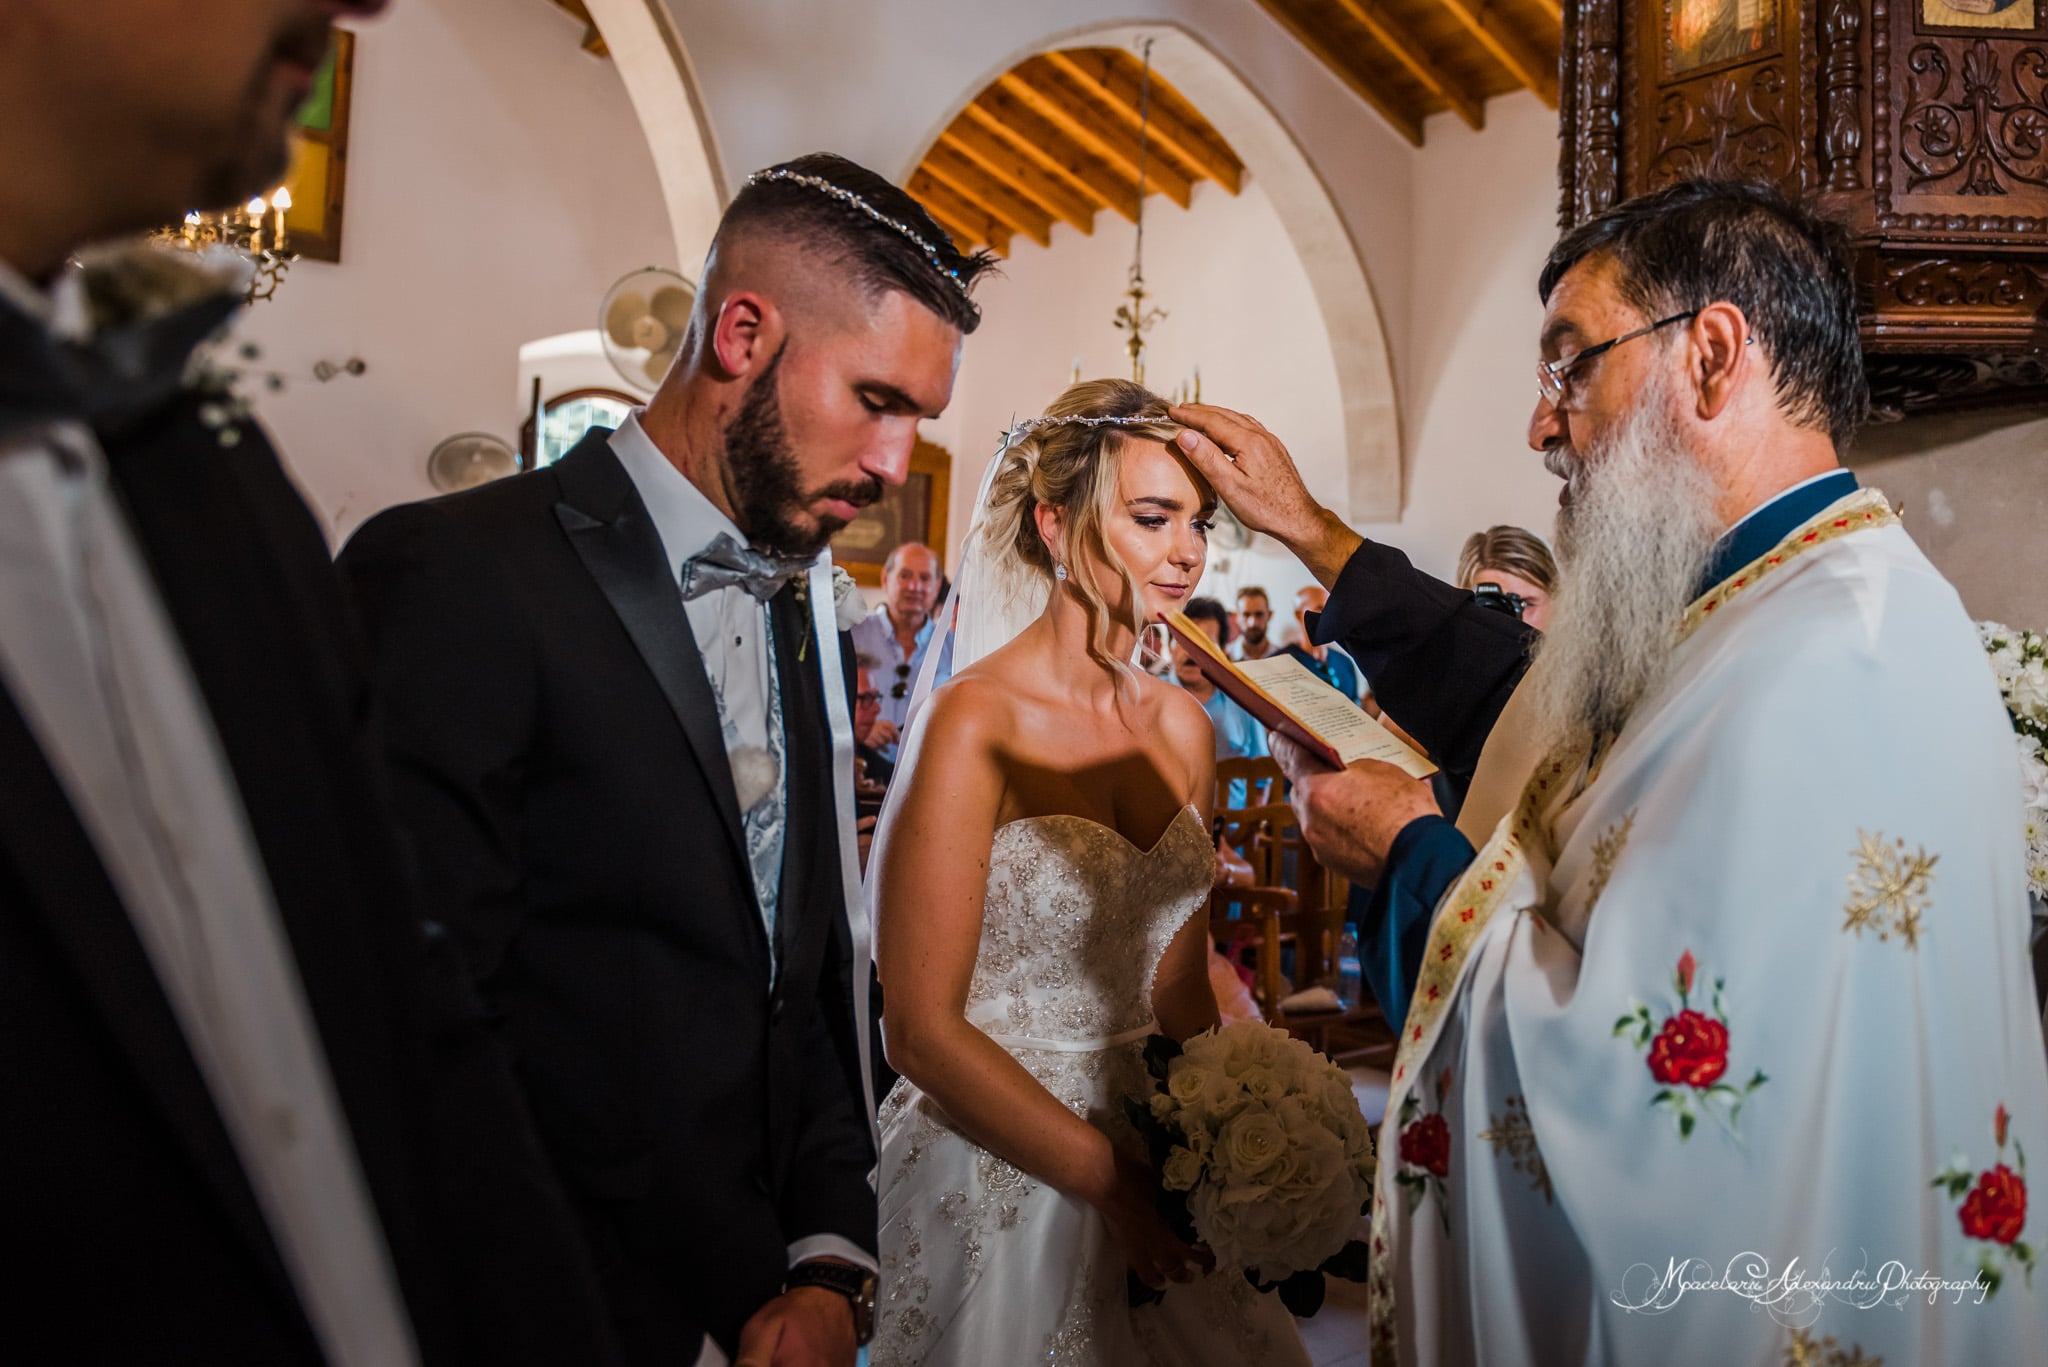 Wedding photography in Paphos - The priest is blessing the bride and groom